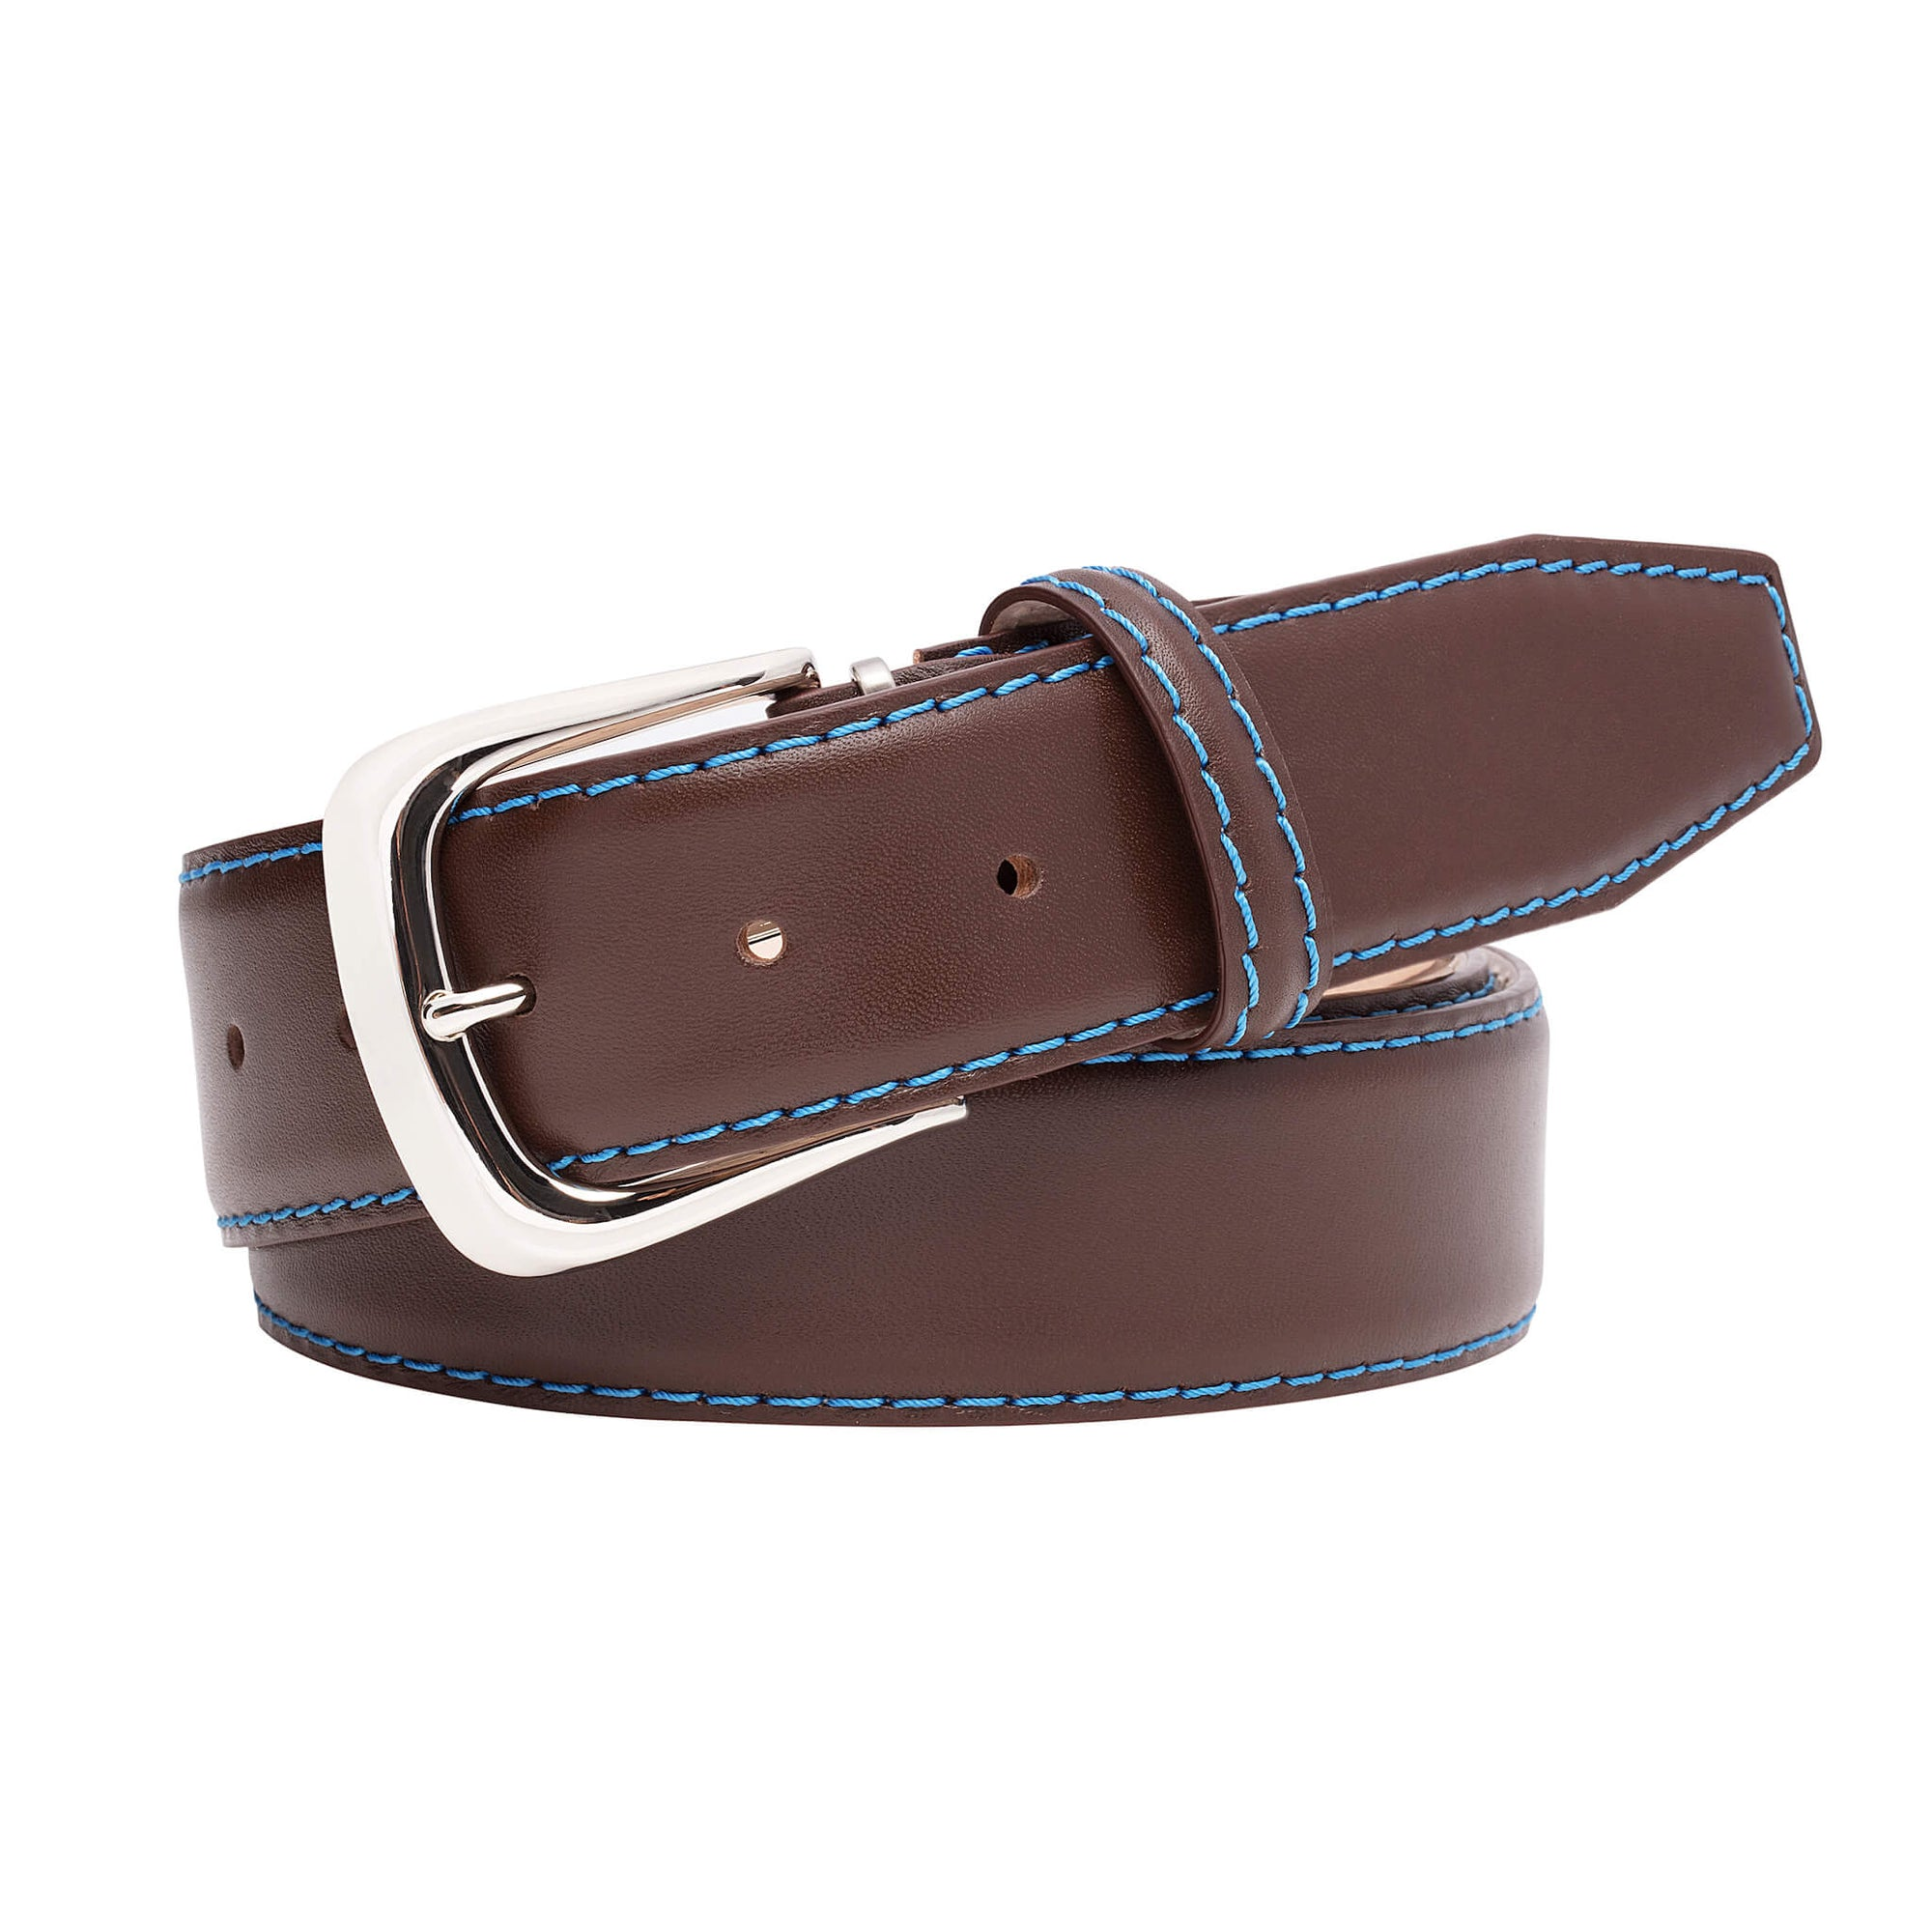 Brown Italian Calf Leather Belt - Cobalt / 44 / 35mm | Mens Fashion & Leather Goods by Roger Ximenez